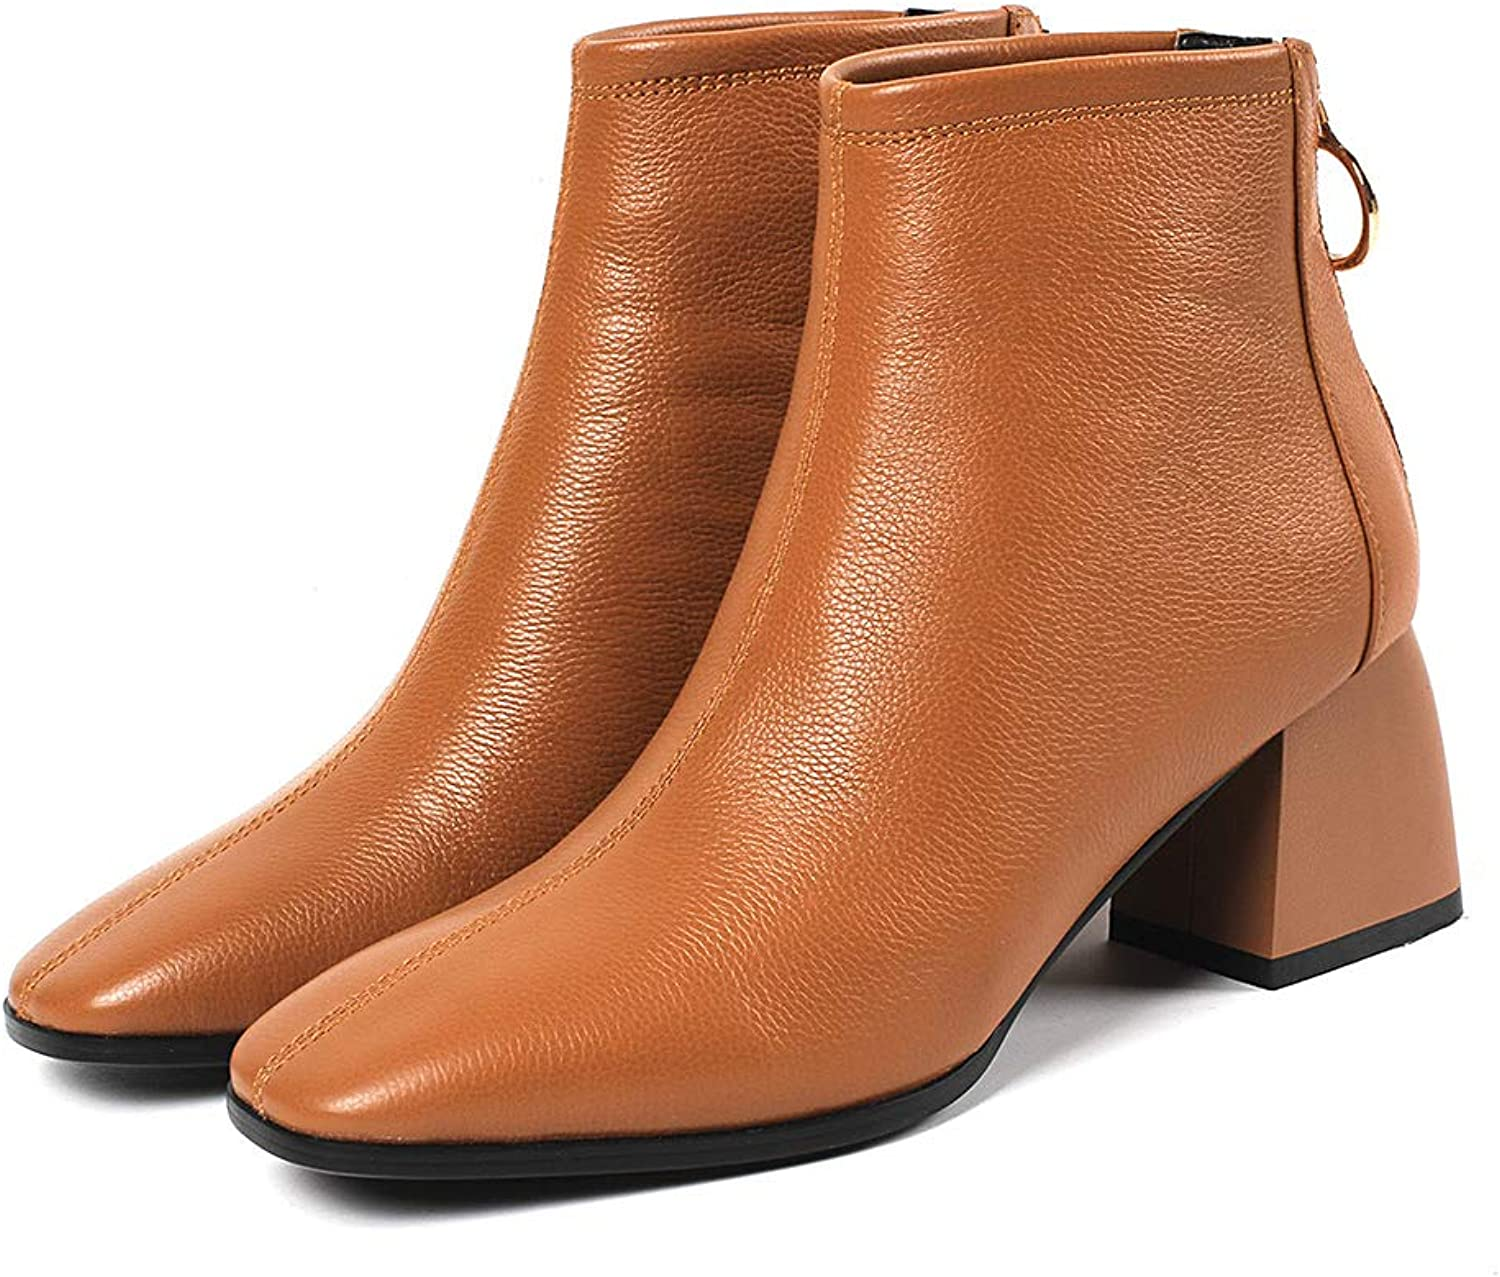 MAYPIE Womens Toafrai Leather Zipper Ankle Boots